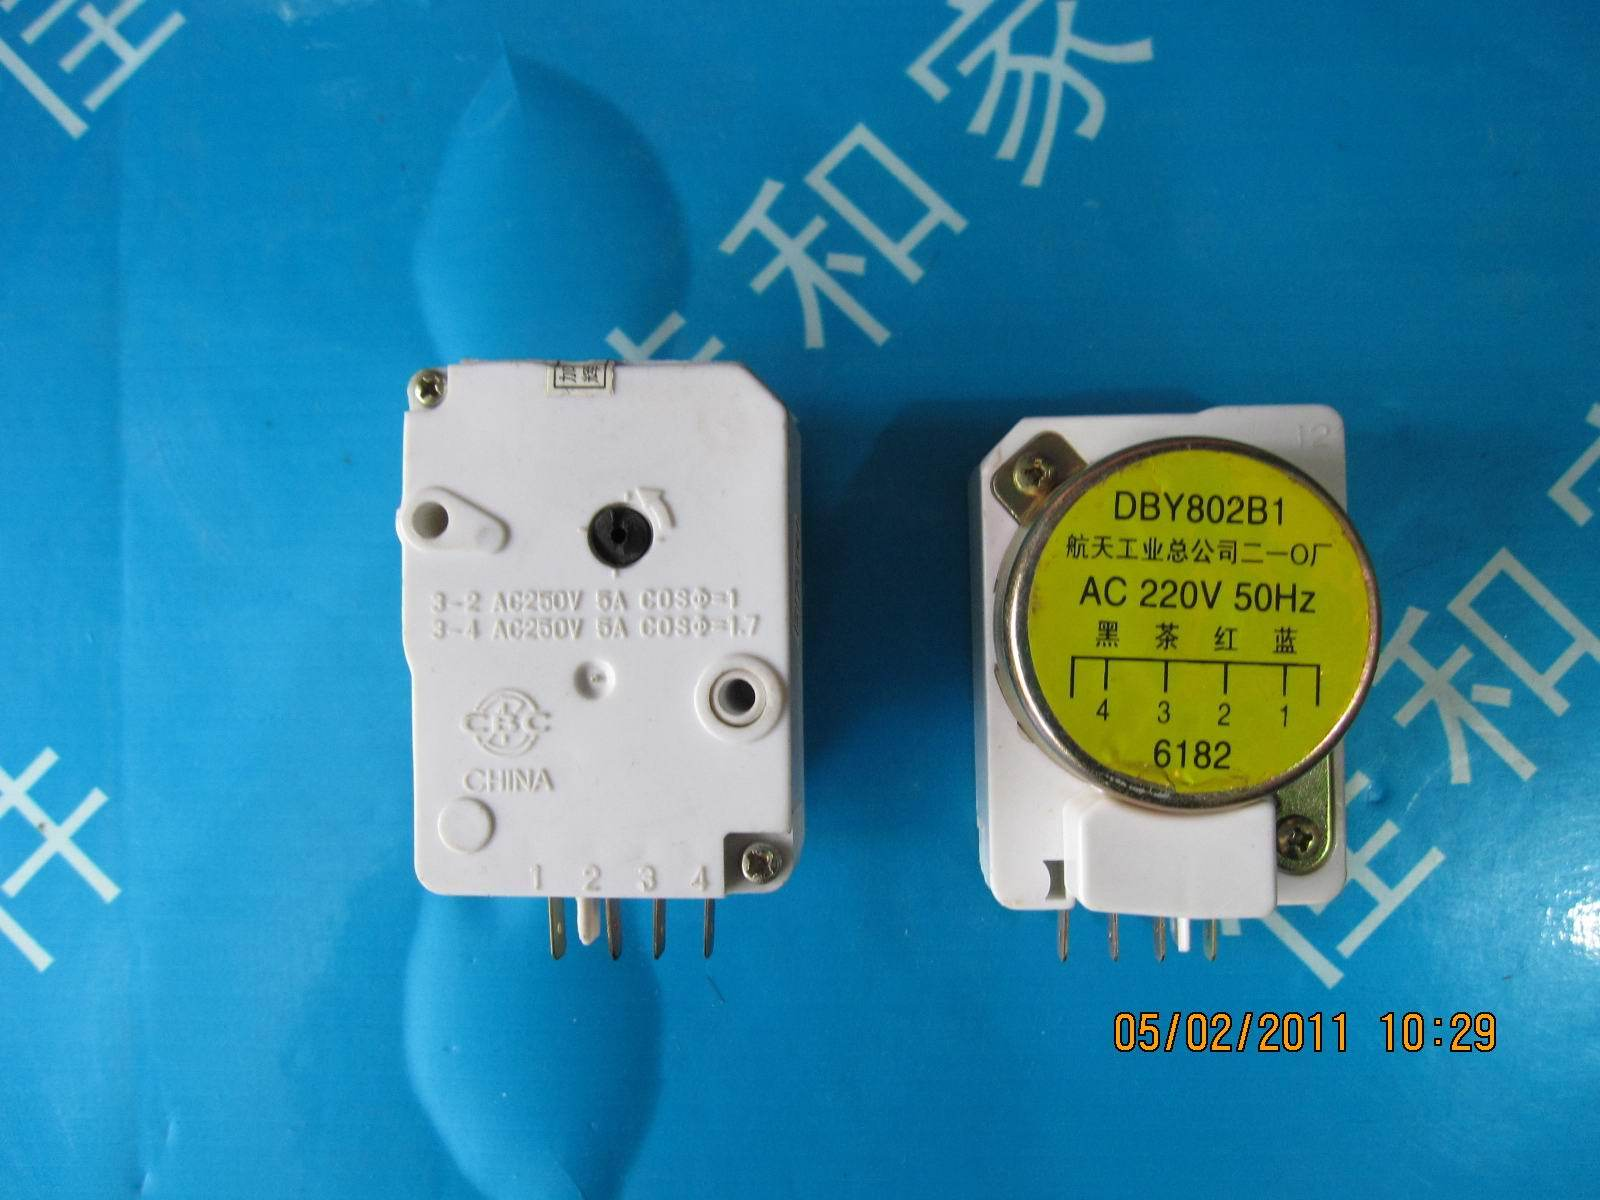 Refrigerator accessories dby802a1 rong sheng defrost timer electric refrigerator dby802b1 rong sheng defrost timer new wave electronic temperature controller time timer refrigerator companion refrigerator companion refrigerator delay protector